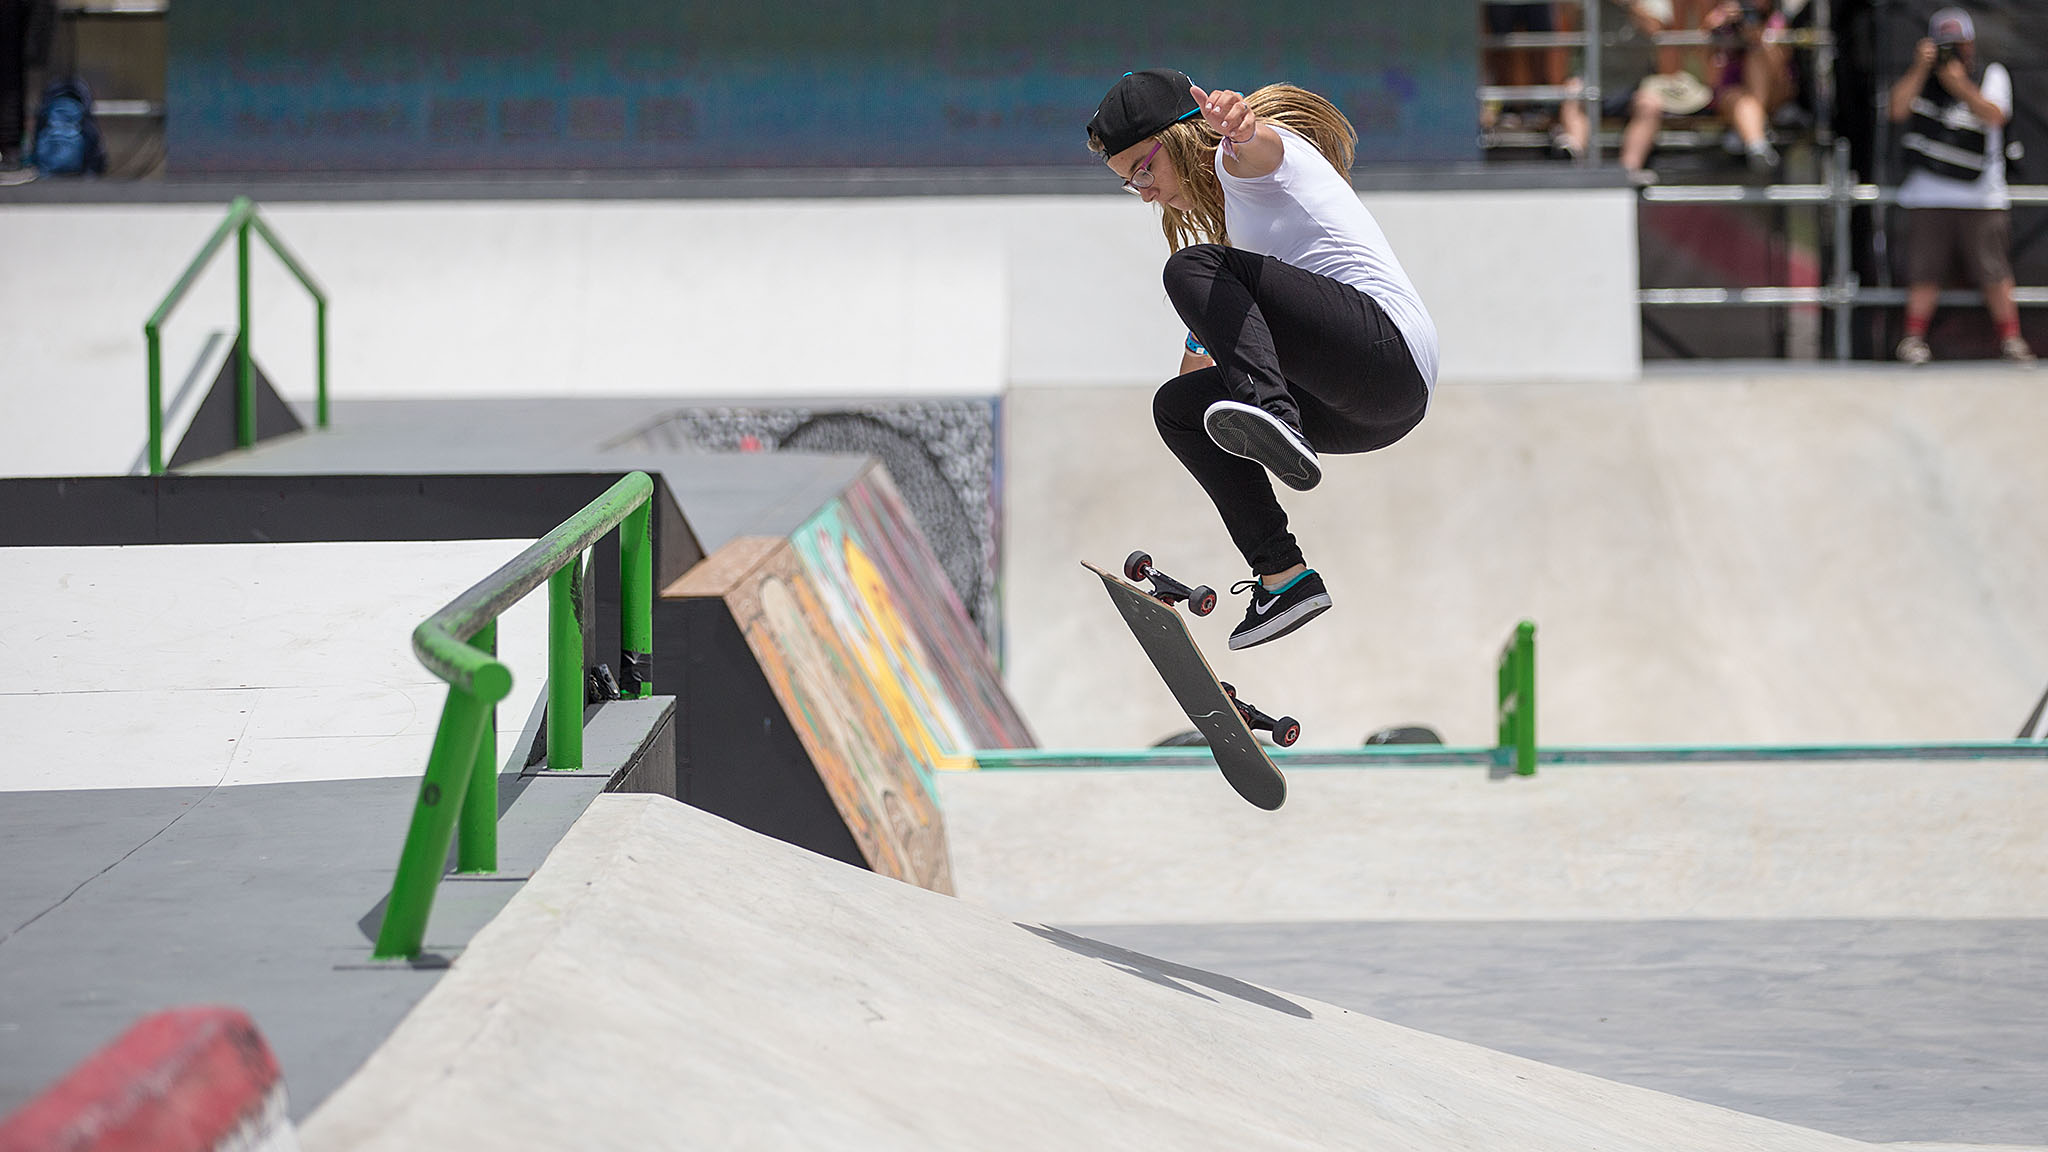 When 14-year-old Brazilian powerhouse Pamela Rosa made her X Games debut last year at age 13, nerves seemed to get the better of her. She landed at the bottom of the pack in both Foz do Iguacu and L.A. Rosa appears to have gotten contest jitters out of her system -- she threw and landed more tricks than almost every other competitor in the Women's Skateboard Street final to take her first medal, a silver.